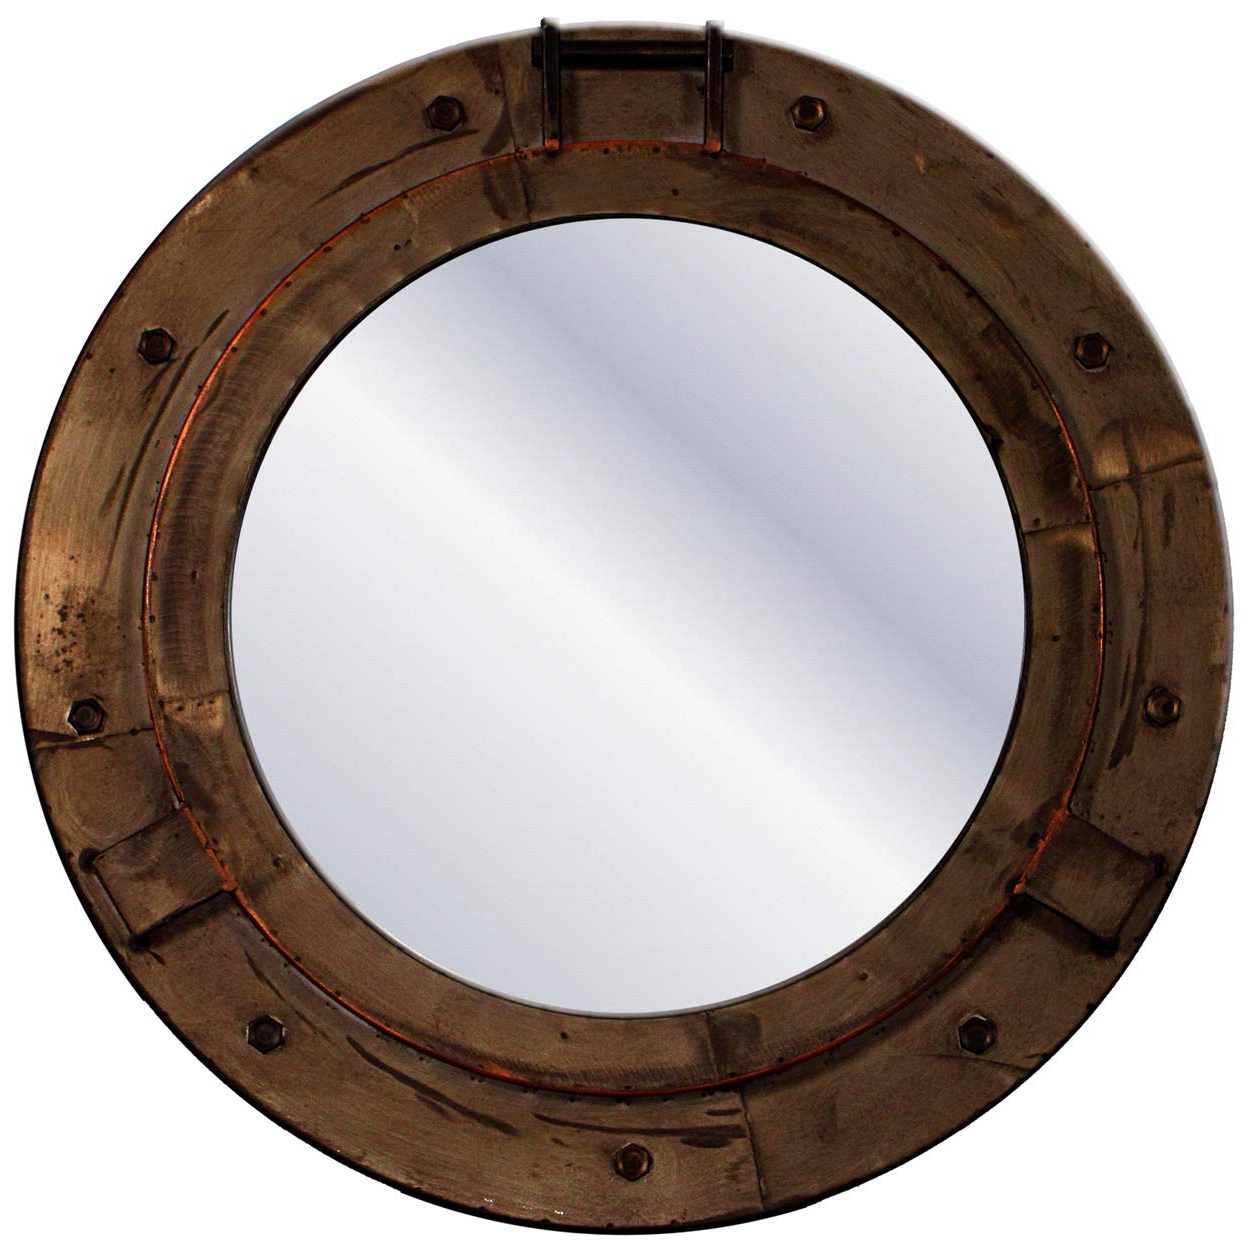 Widely Used Porthole Wall Mirrors Inside Carrick Design Metal Art Porthole Wall Mirror: Amazon.co (View 13 of 20)